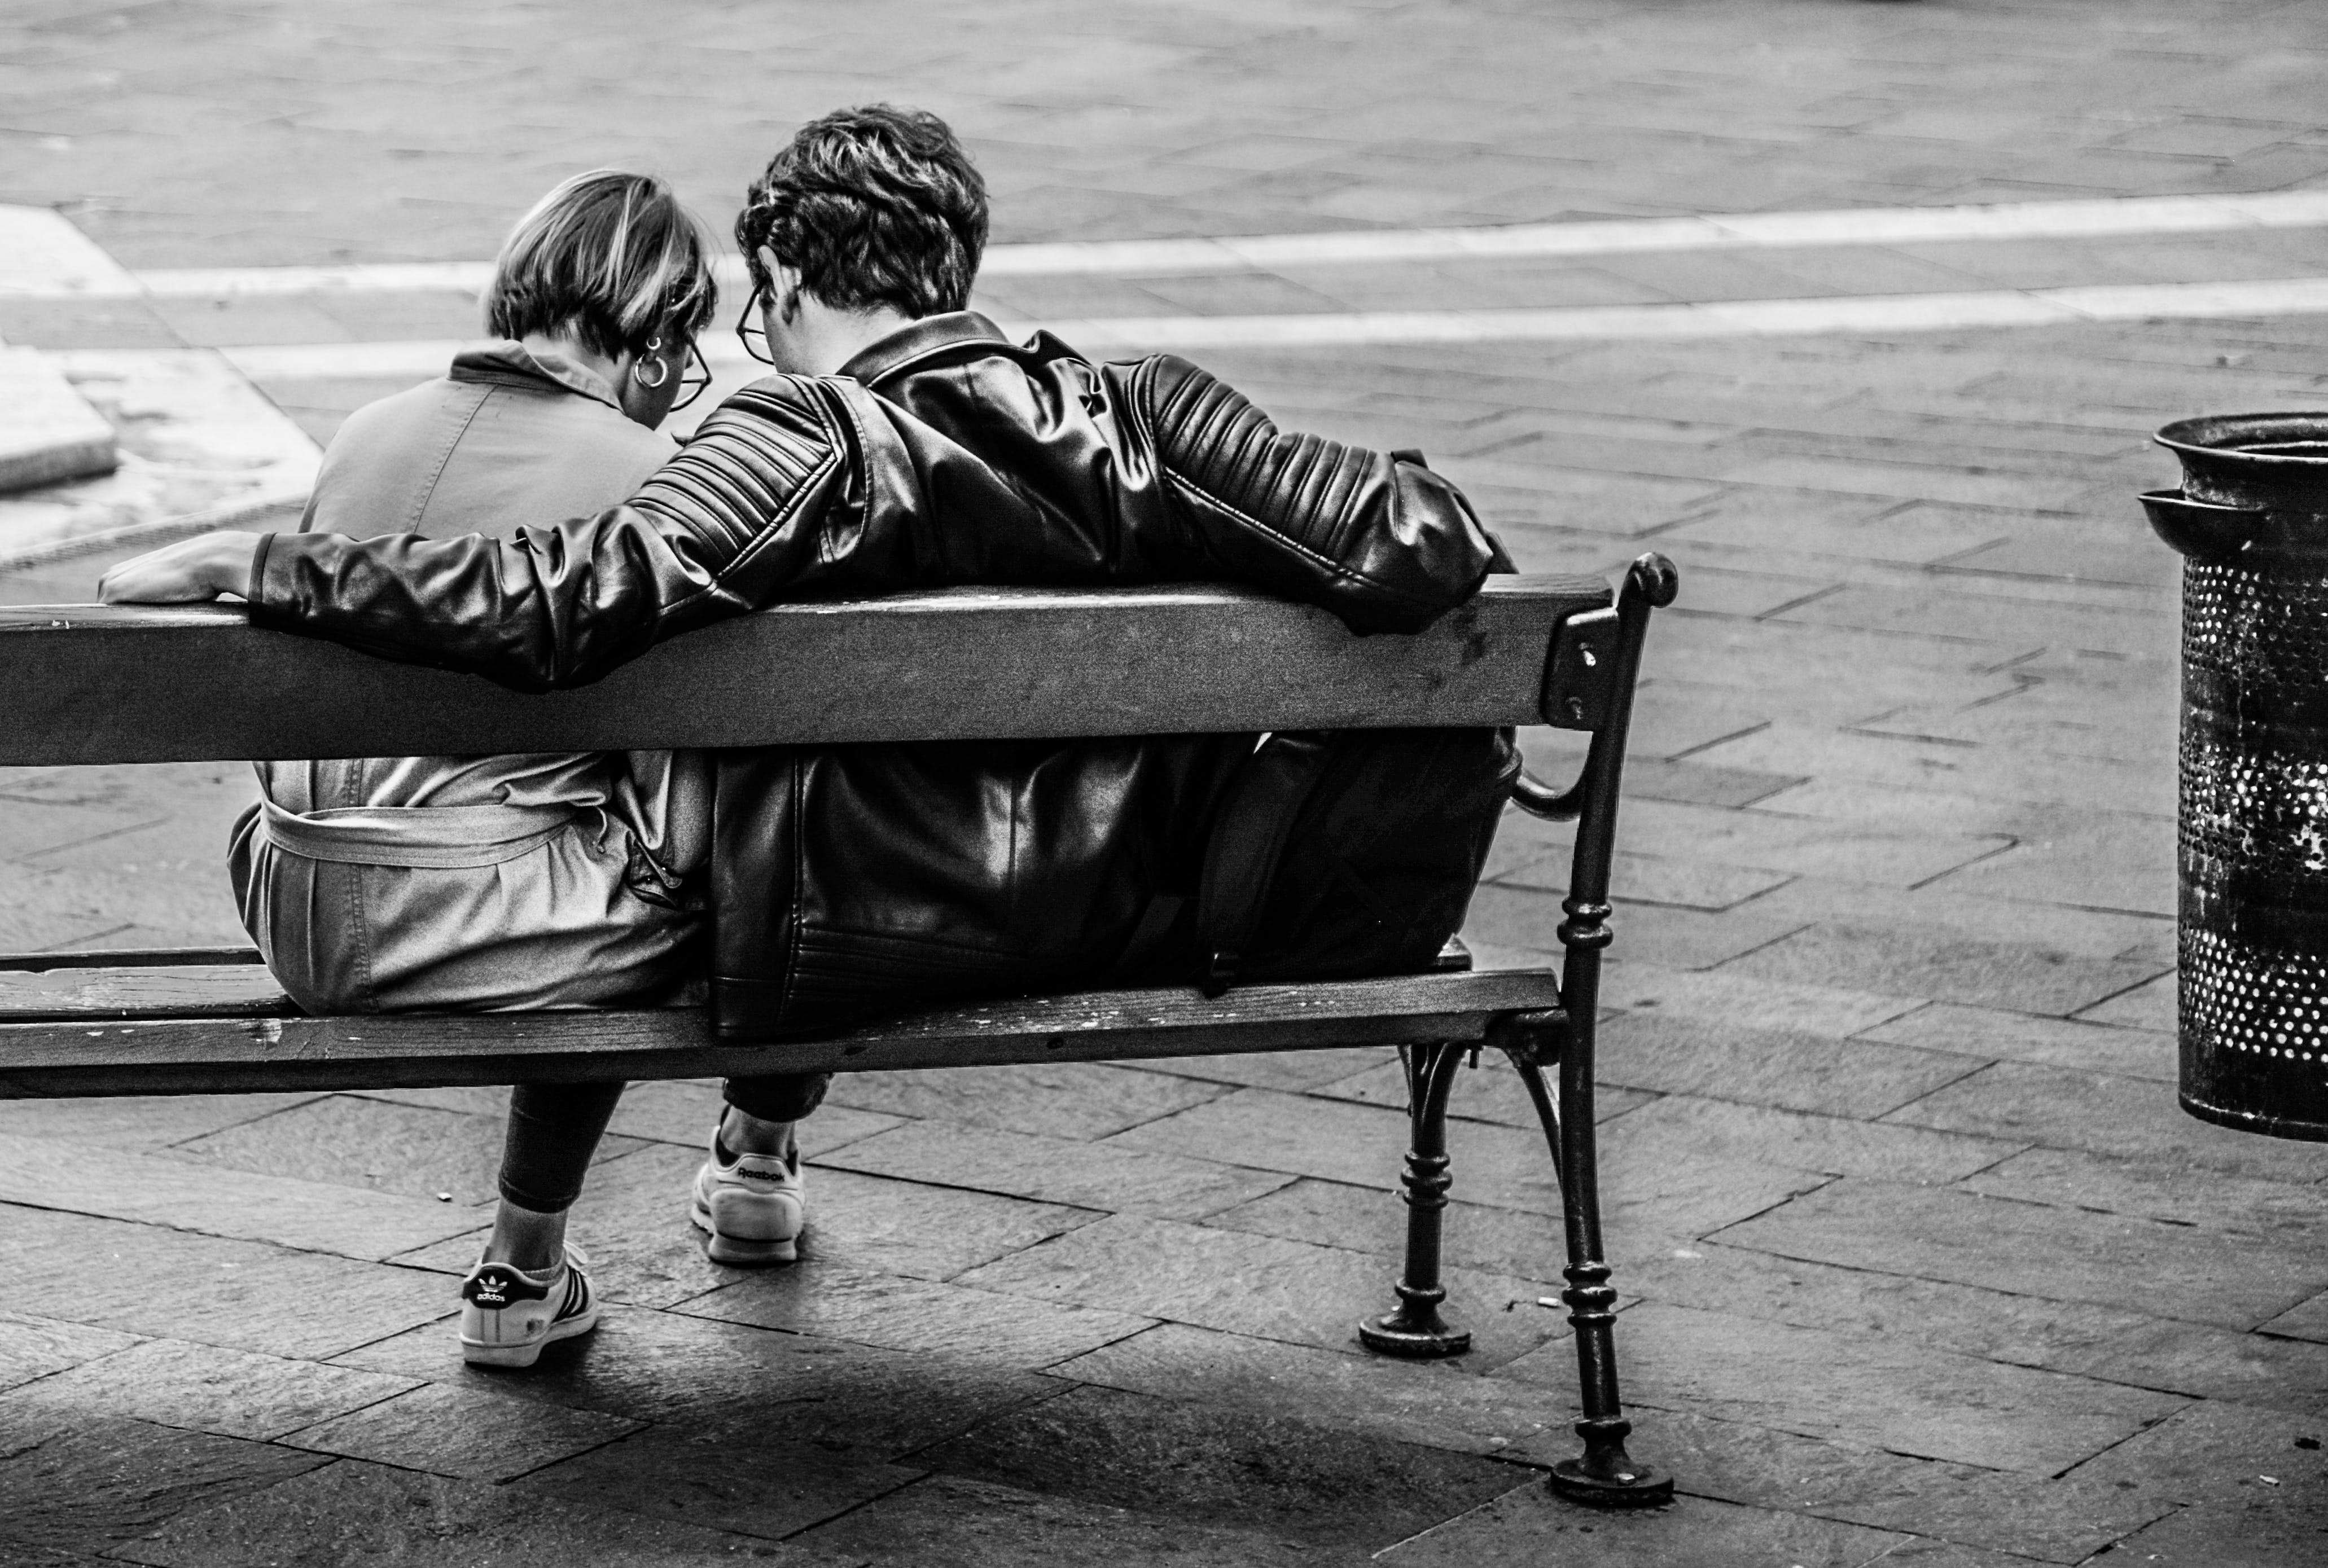 Grayscale Photo of Two Person Sitting on a Bench